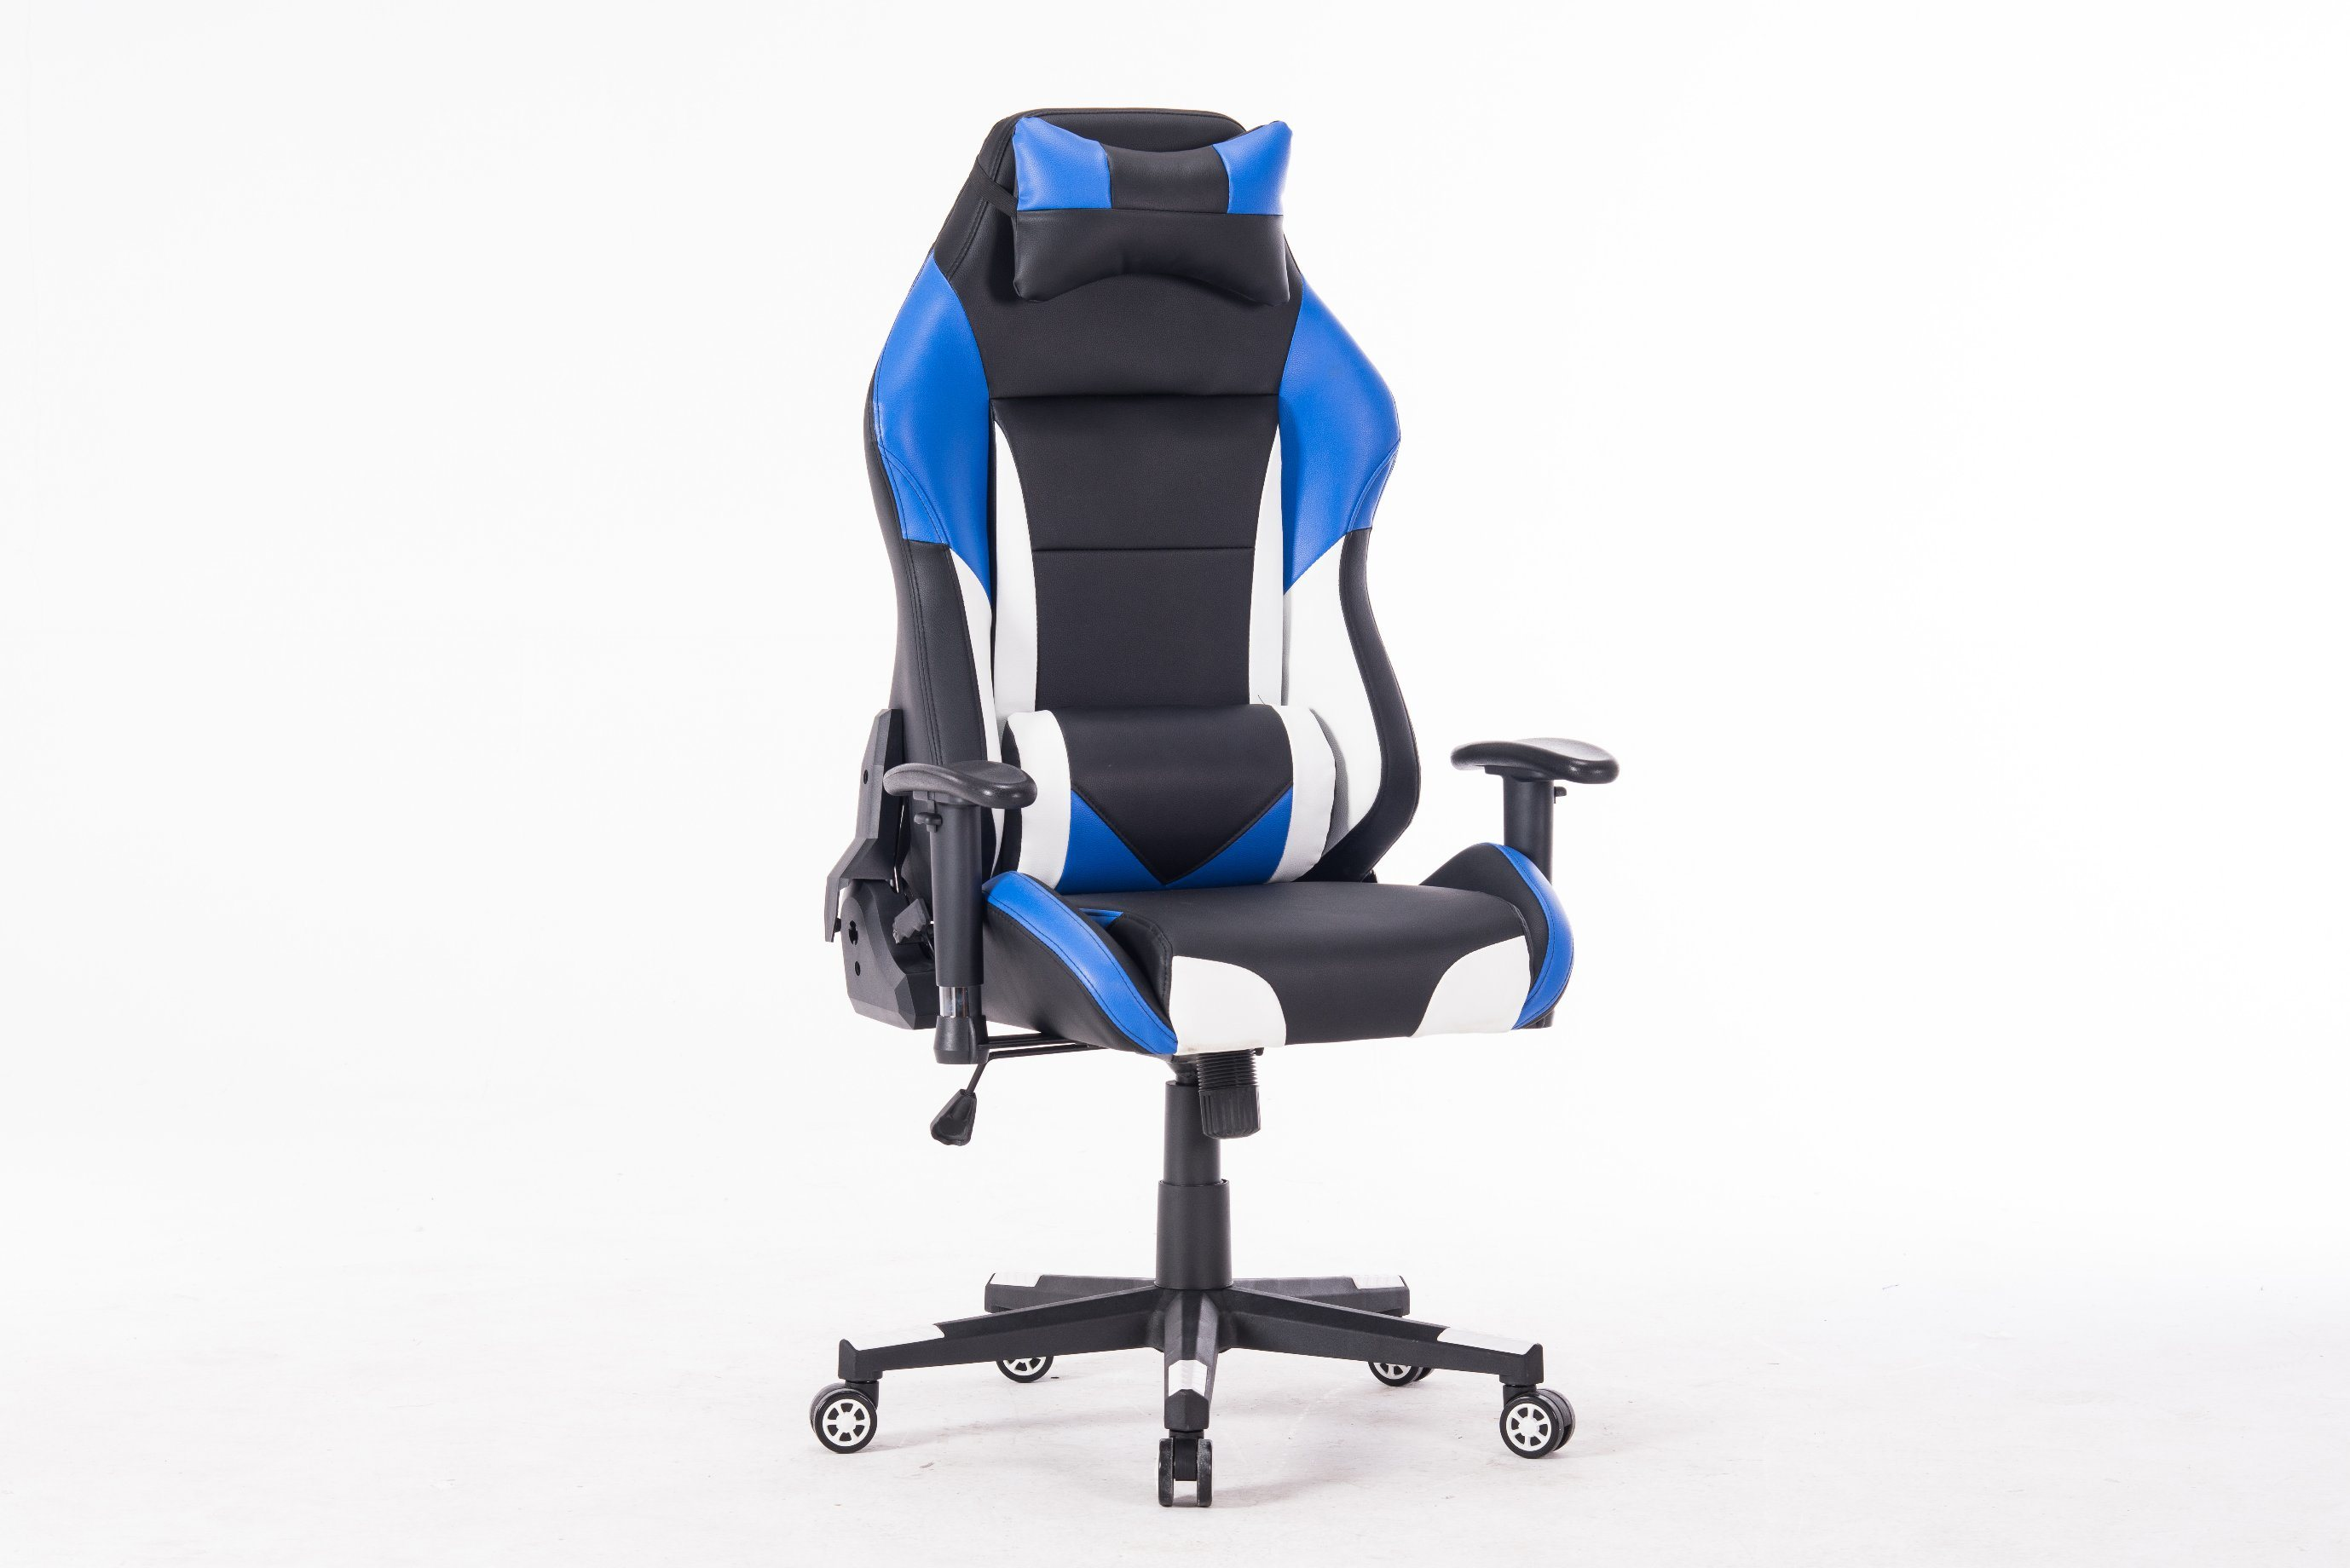 China 2018 High Quality Recaro Office Chair Cyber Cafe Chair Racing Seats China Gaming Chair Office Chair